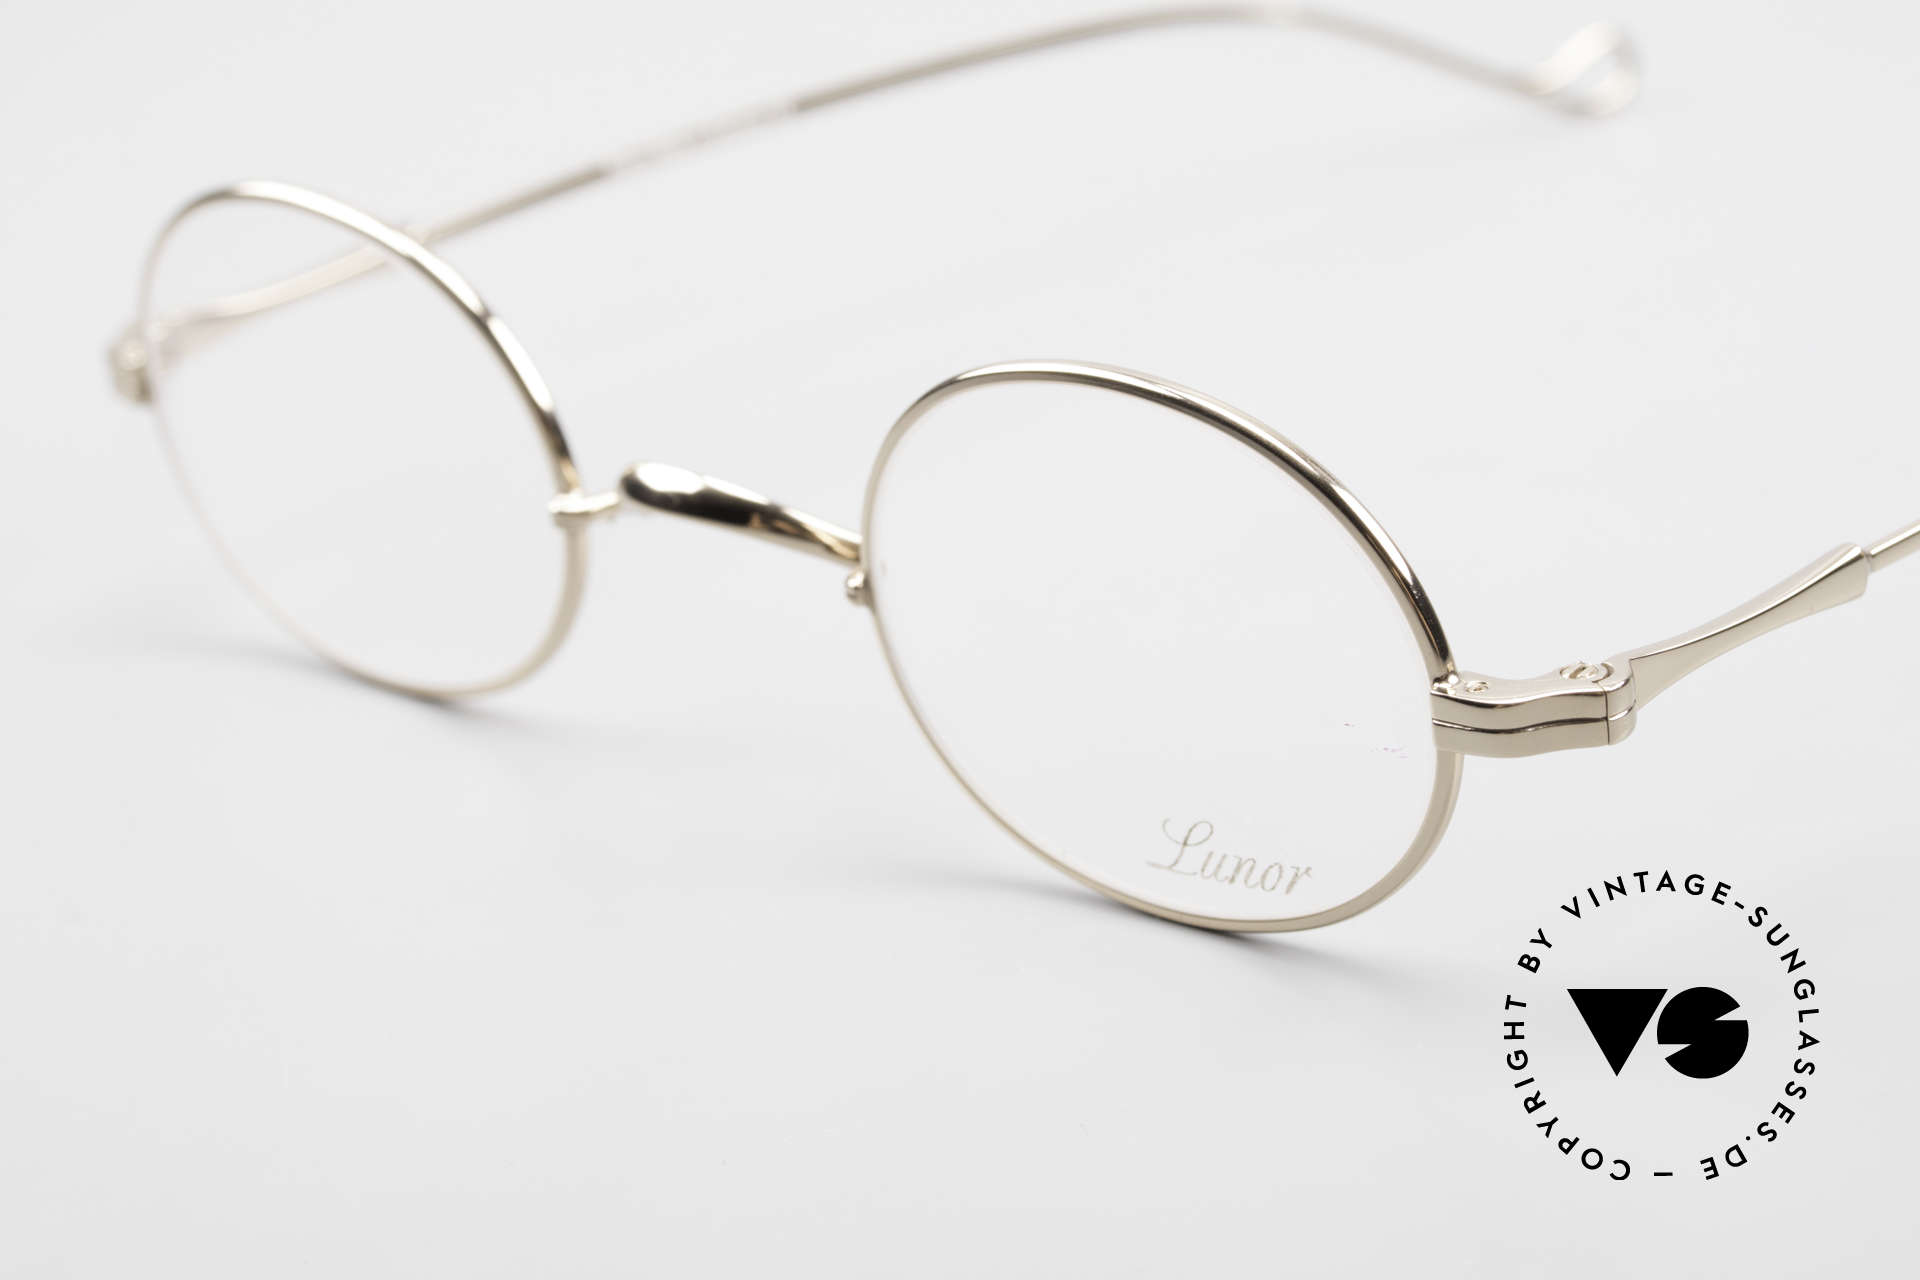 Lunor II 10 Oval Lunor Frame Gold Plated, traditional German brand; quality handmade in Germany, Made for Men and Women